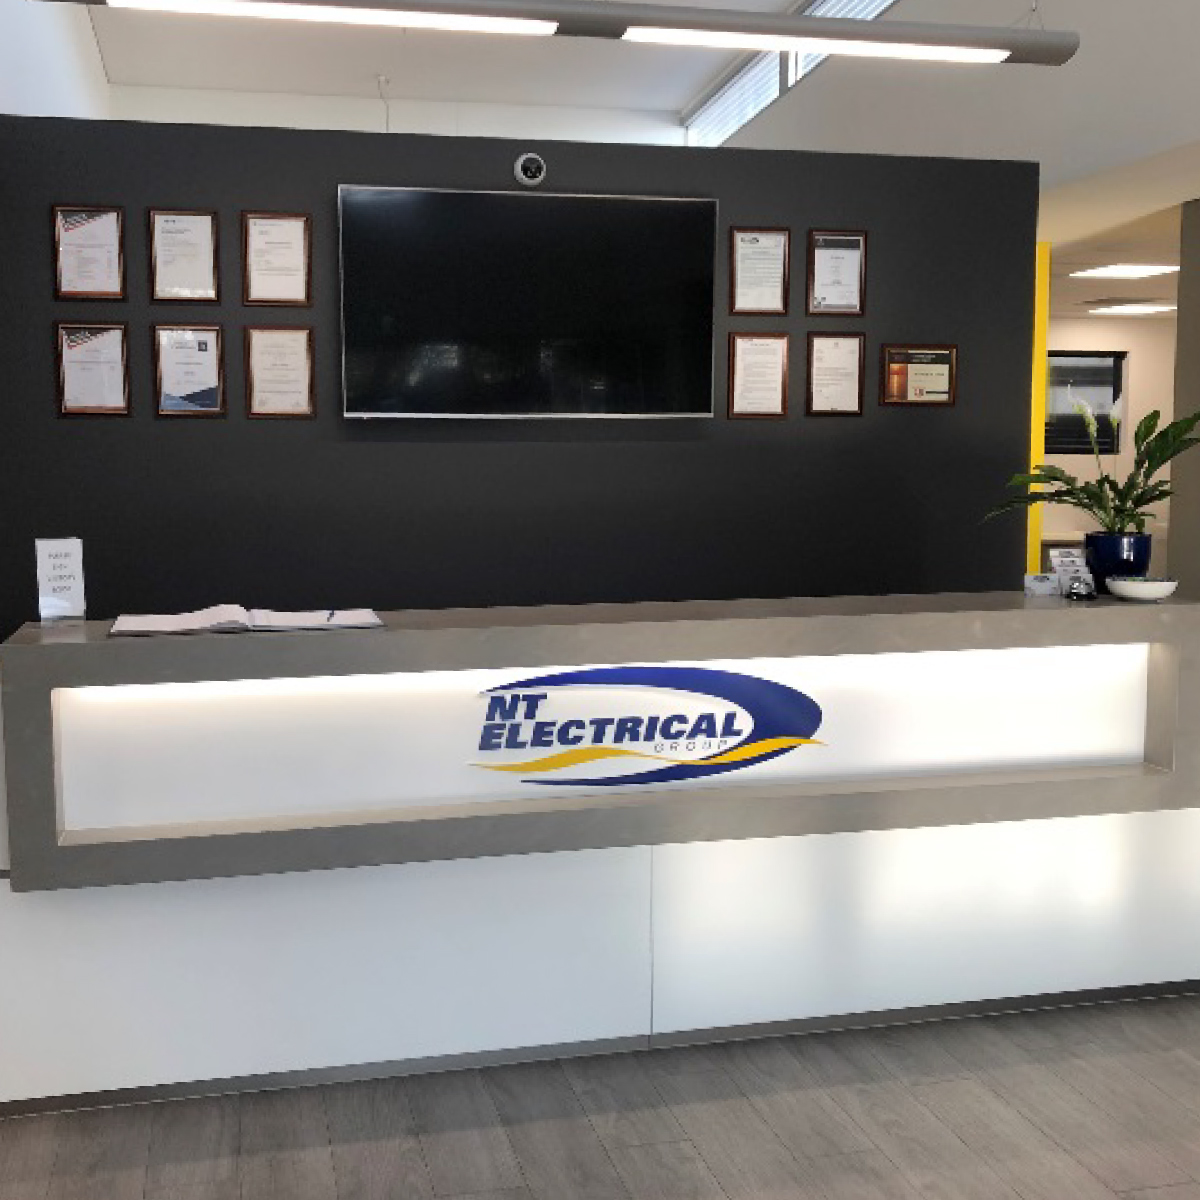 Northern Territory Electrical Group - Front reception area with desk and awards.